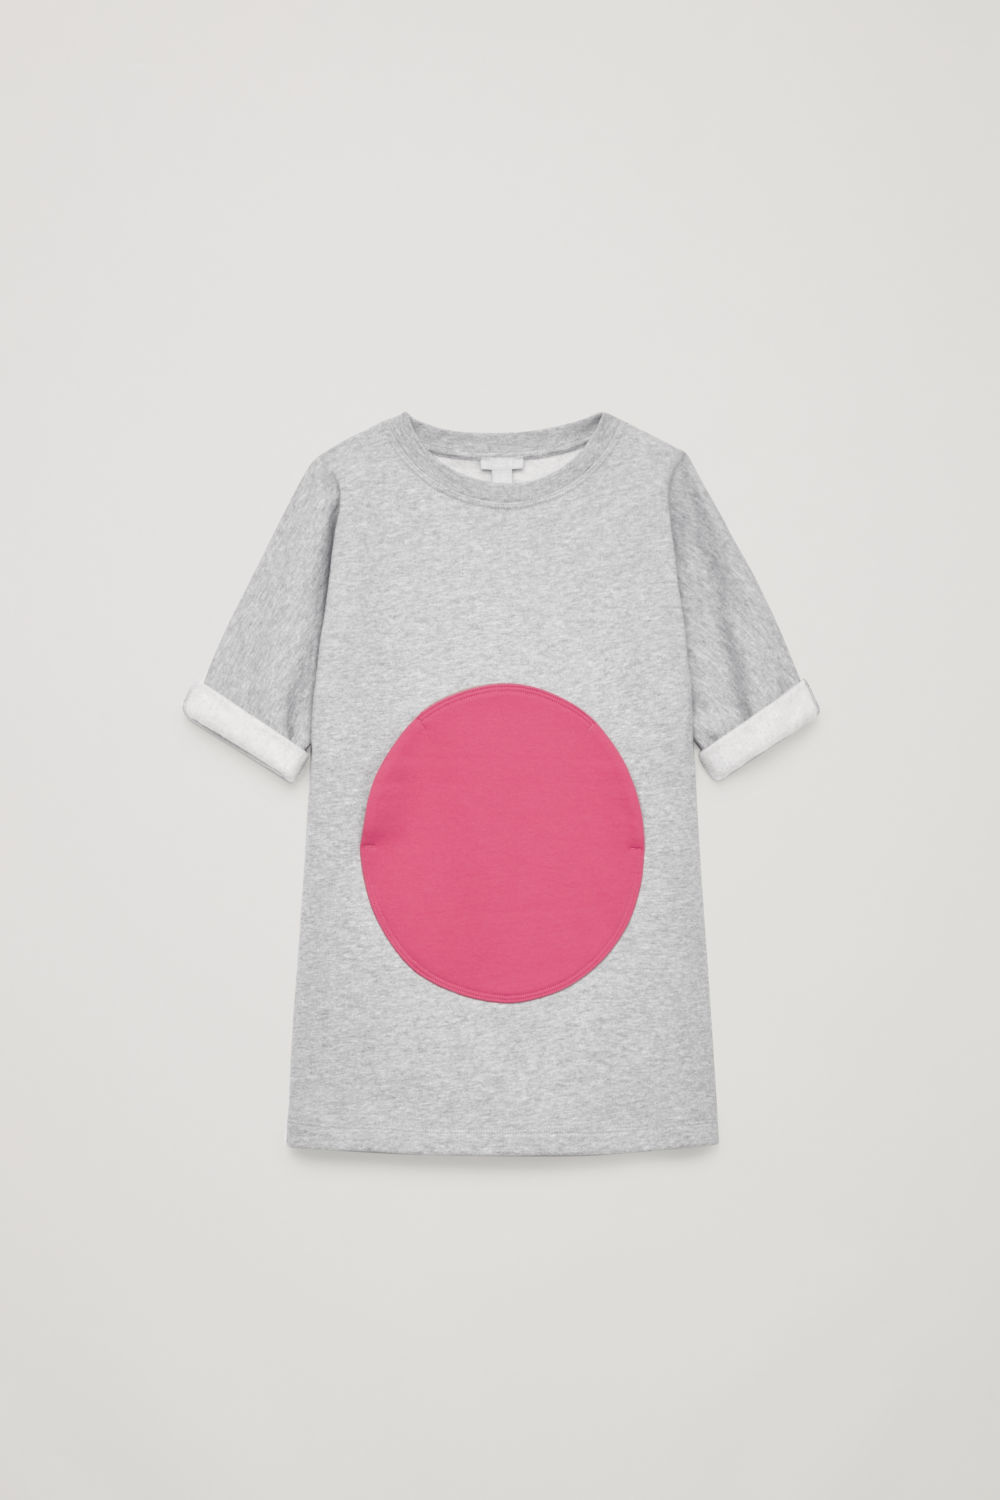 CIRCLE-POCKET JERSEY DRESS